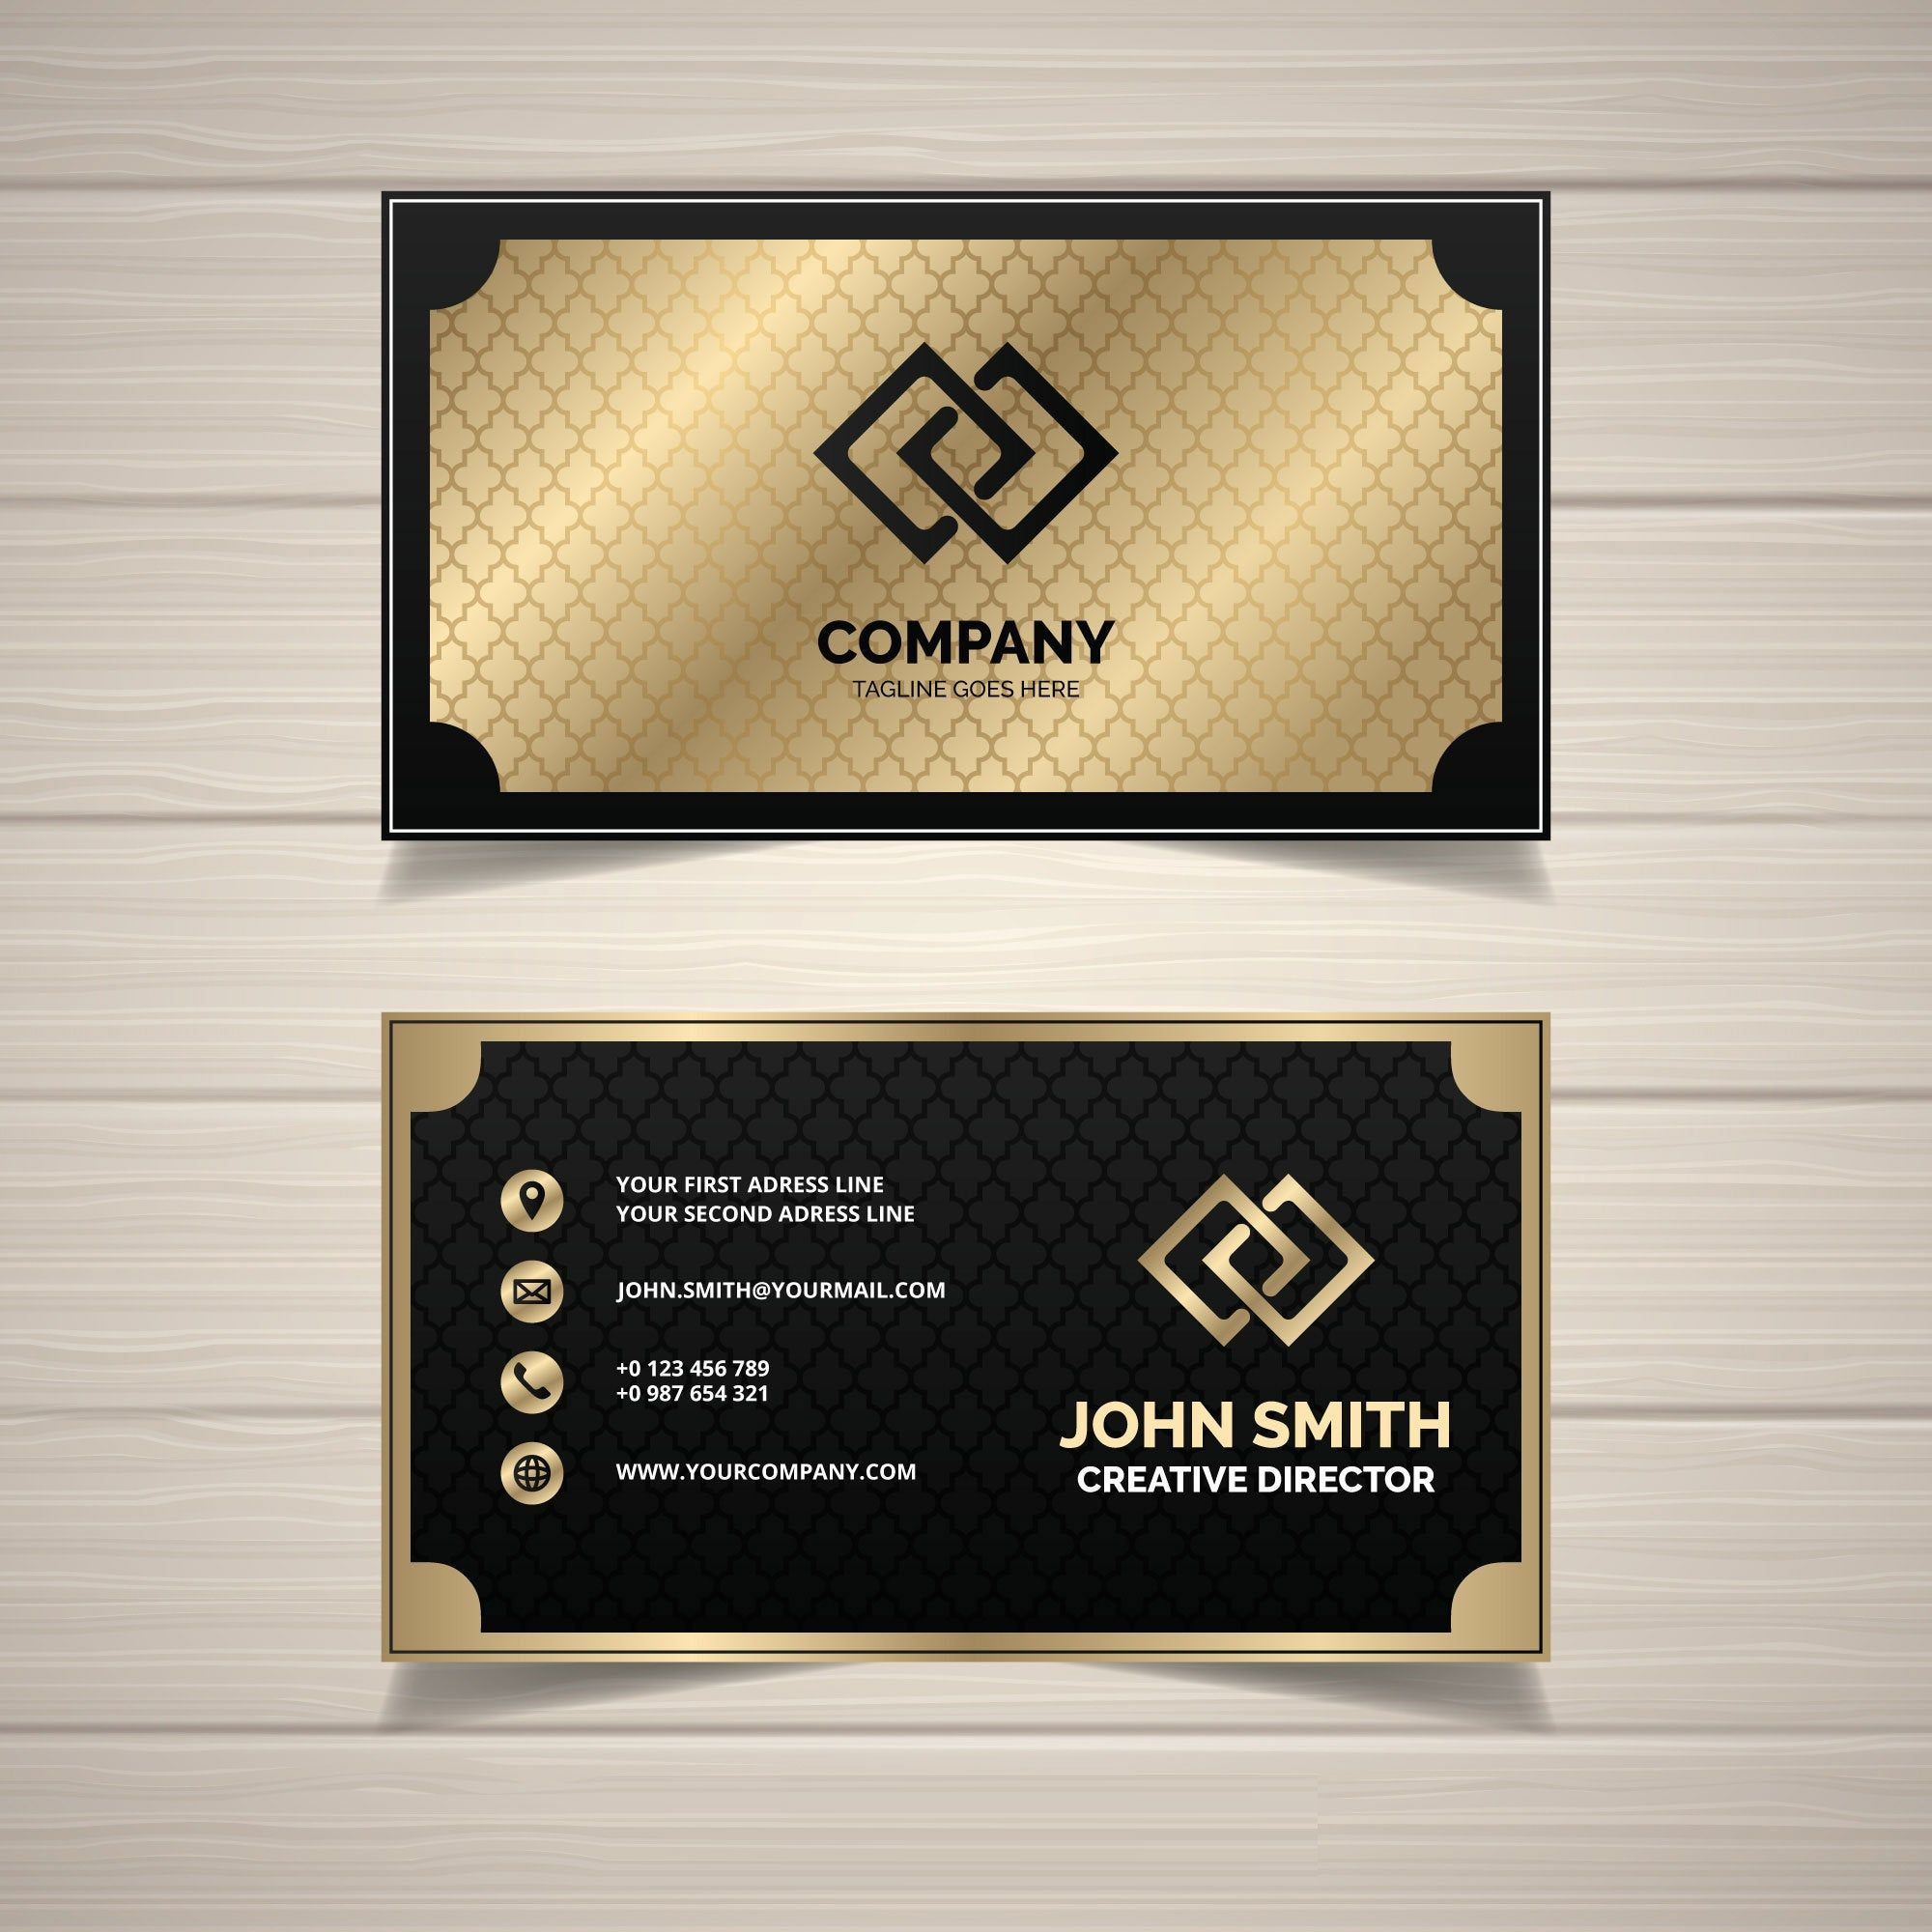 Business Card Template Gold Luxury Business Card Design Business Card Template Exclusive Stationary Template Corporate Branding Template Business Card Design Black Elegant Business Cards Design Business Card Design Creative